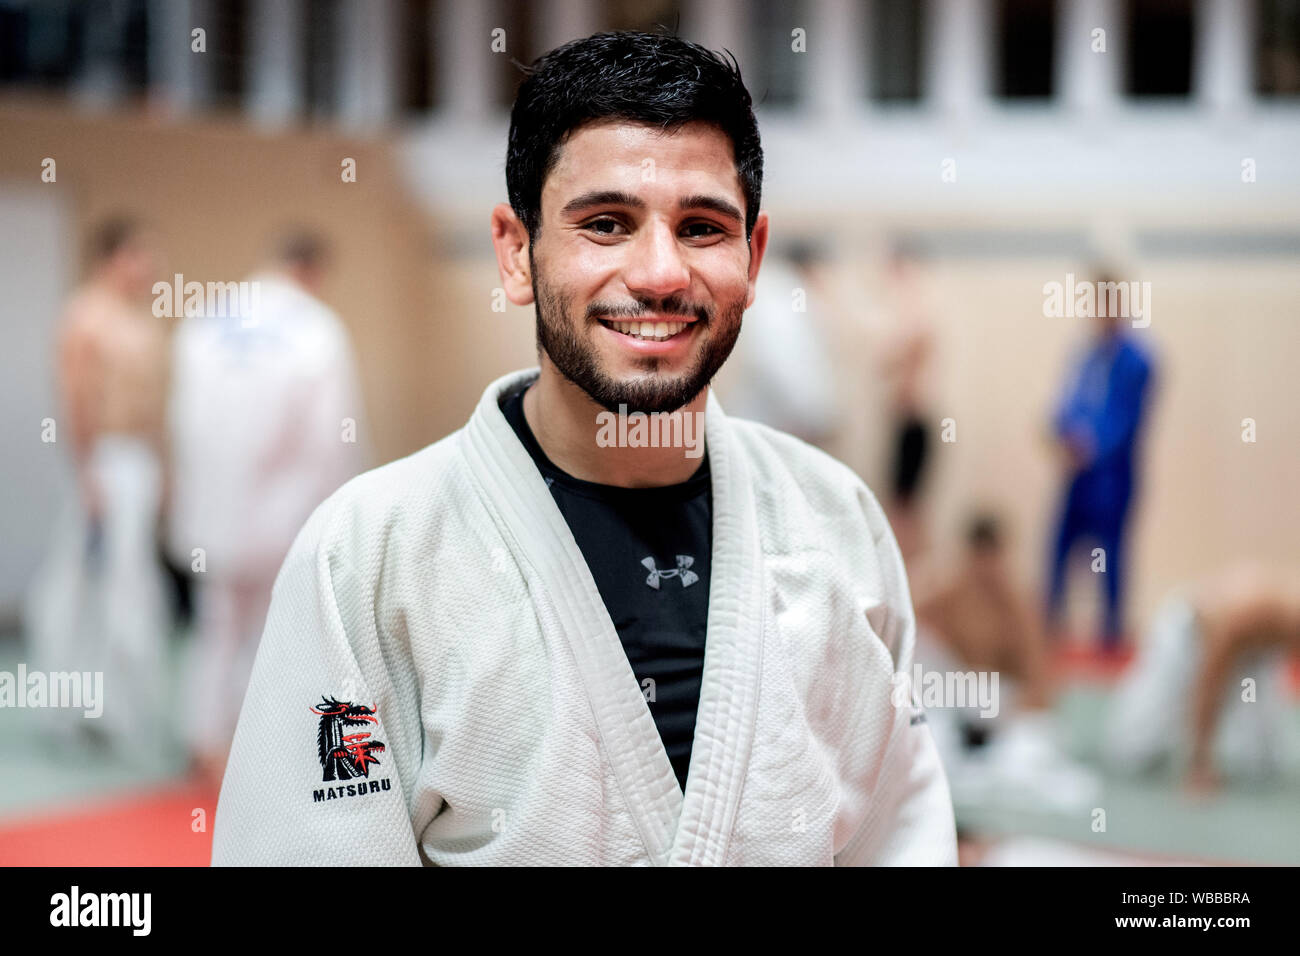 Judo Olympic Stock Photos & Judo Olympic Stock Images - Page